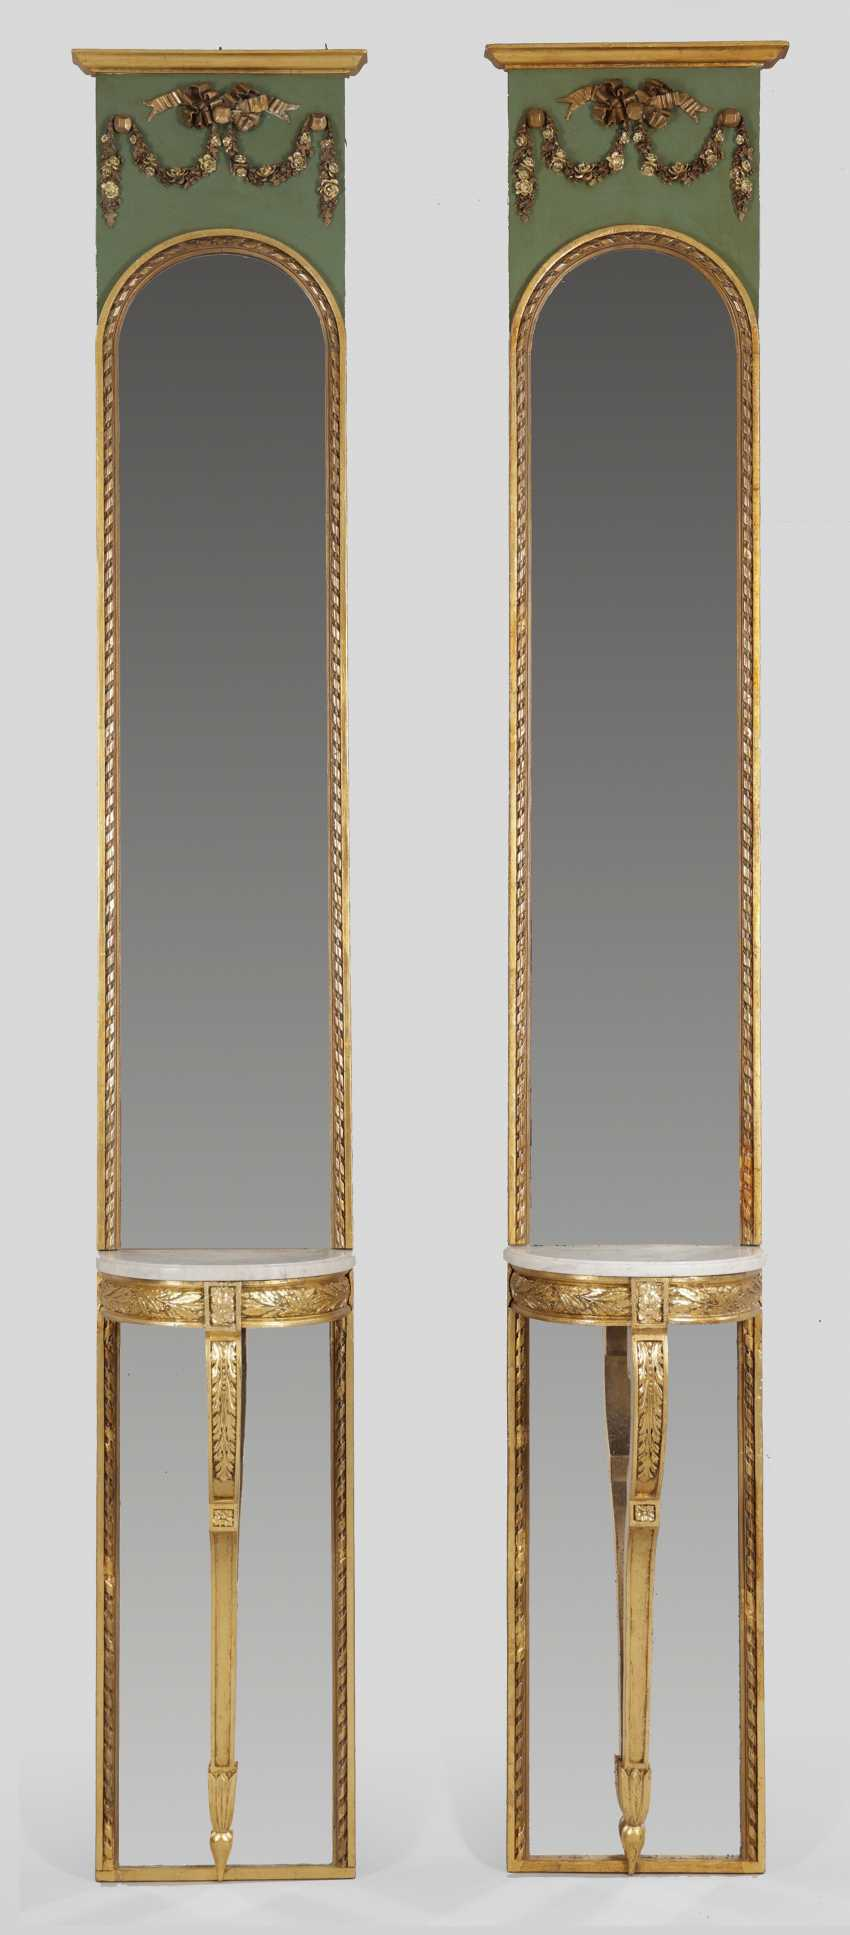 Pair of representative Louis XVI mirror panels with consoles - photo 1